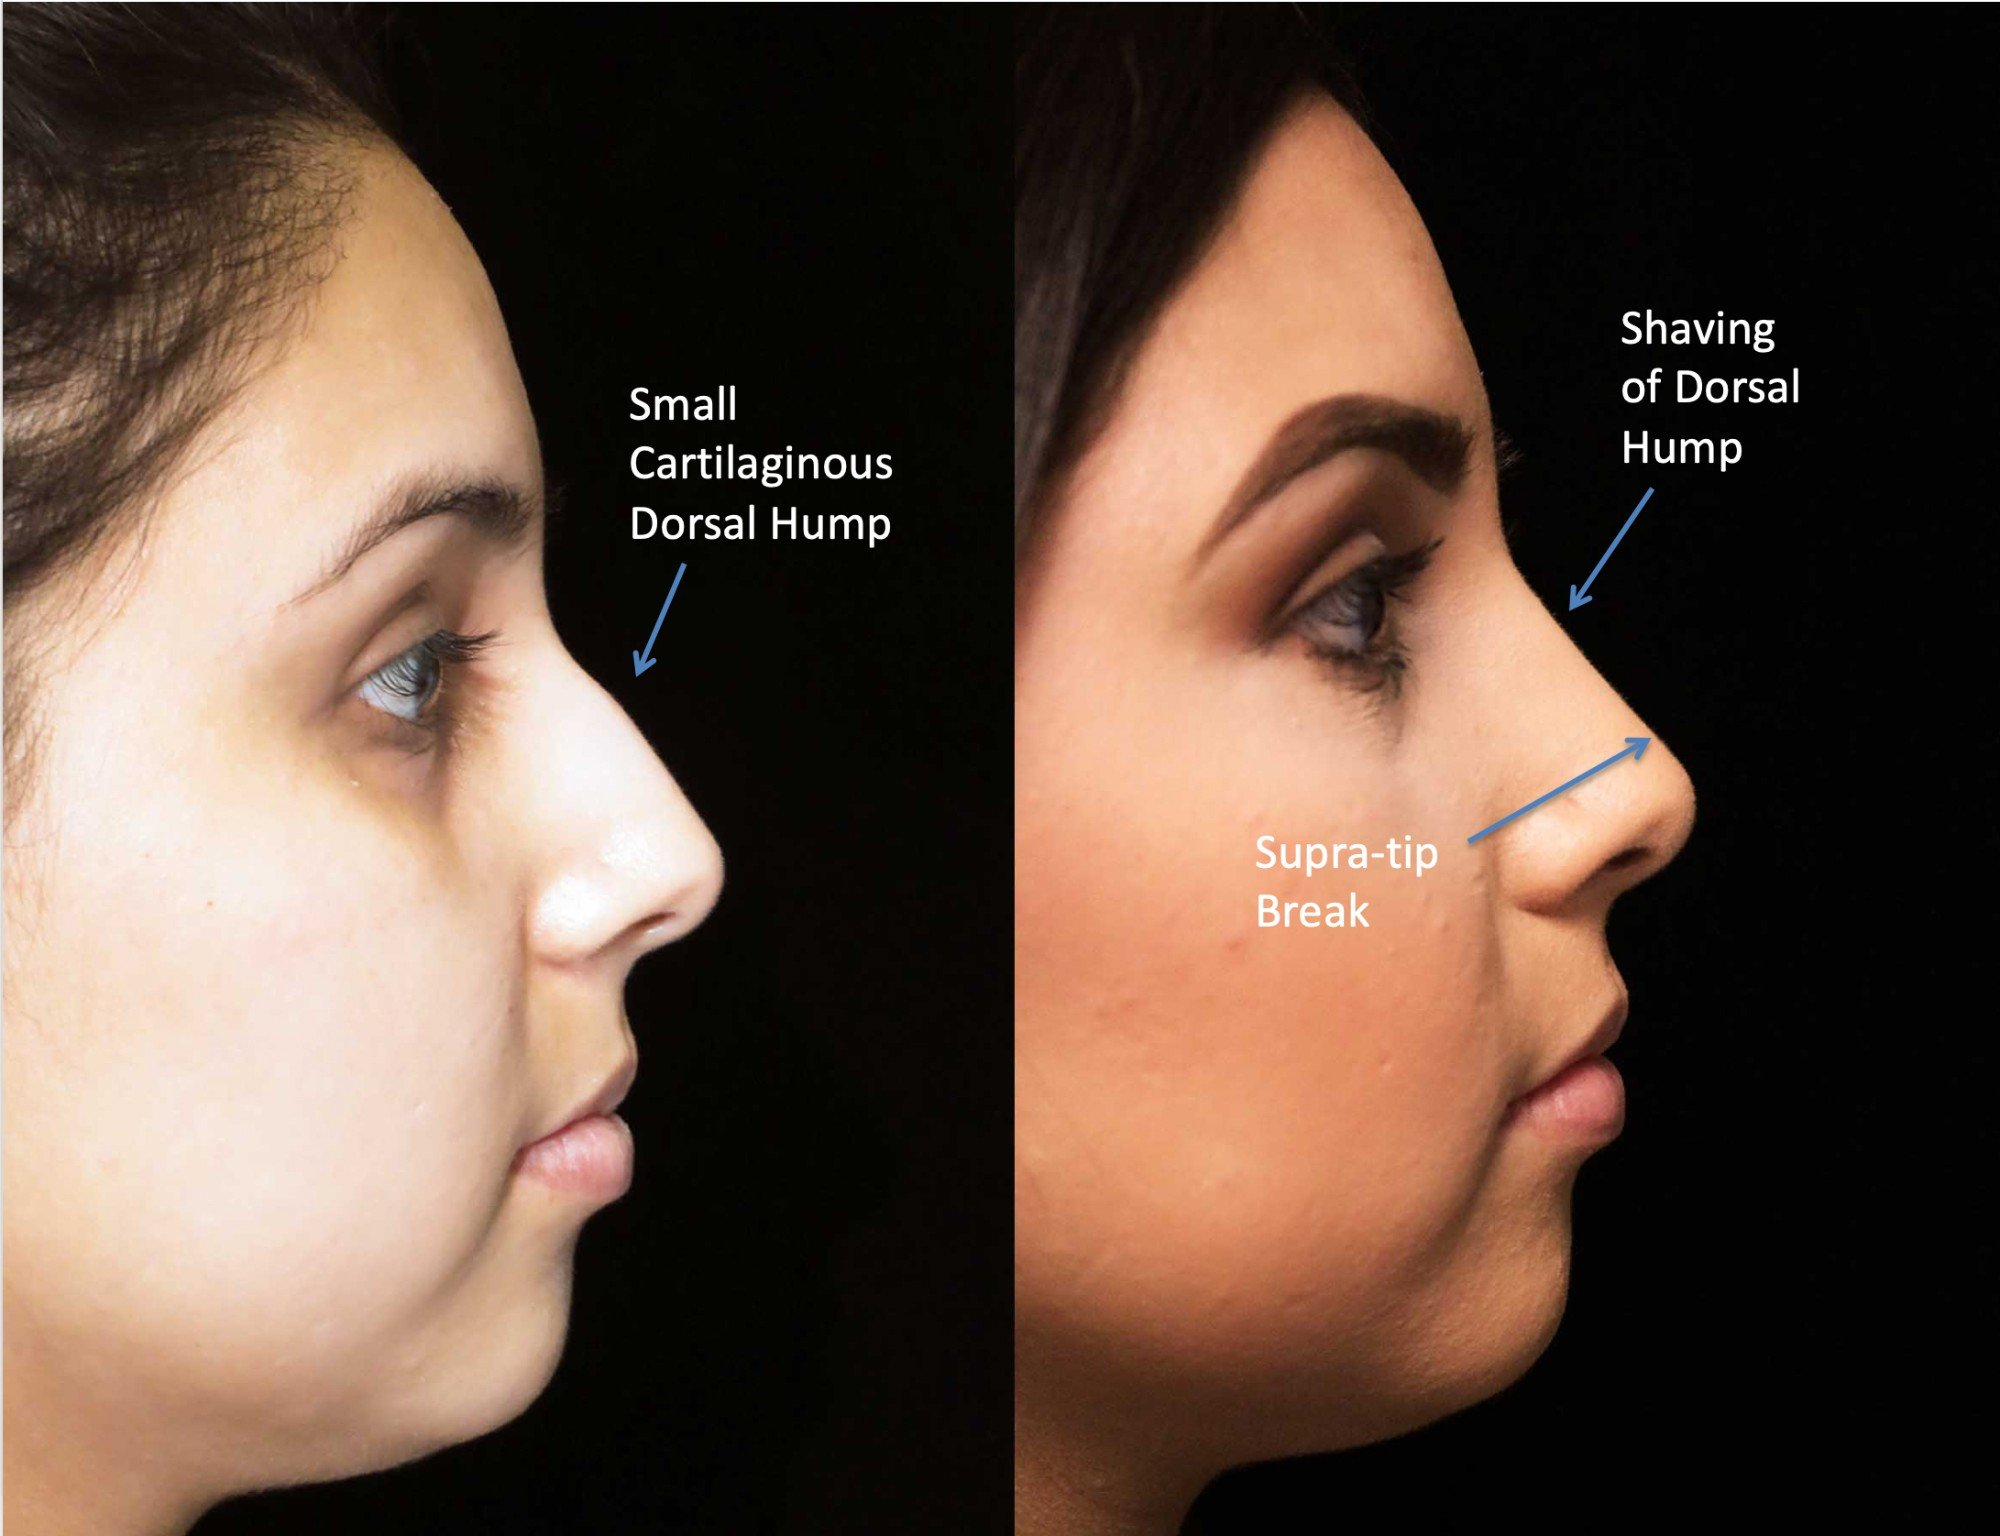 nose job before and after illustration of a woman with wide nasal bones